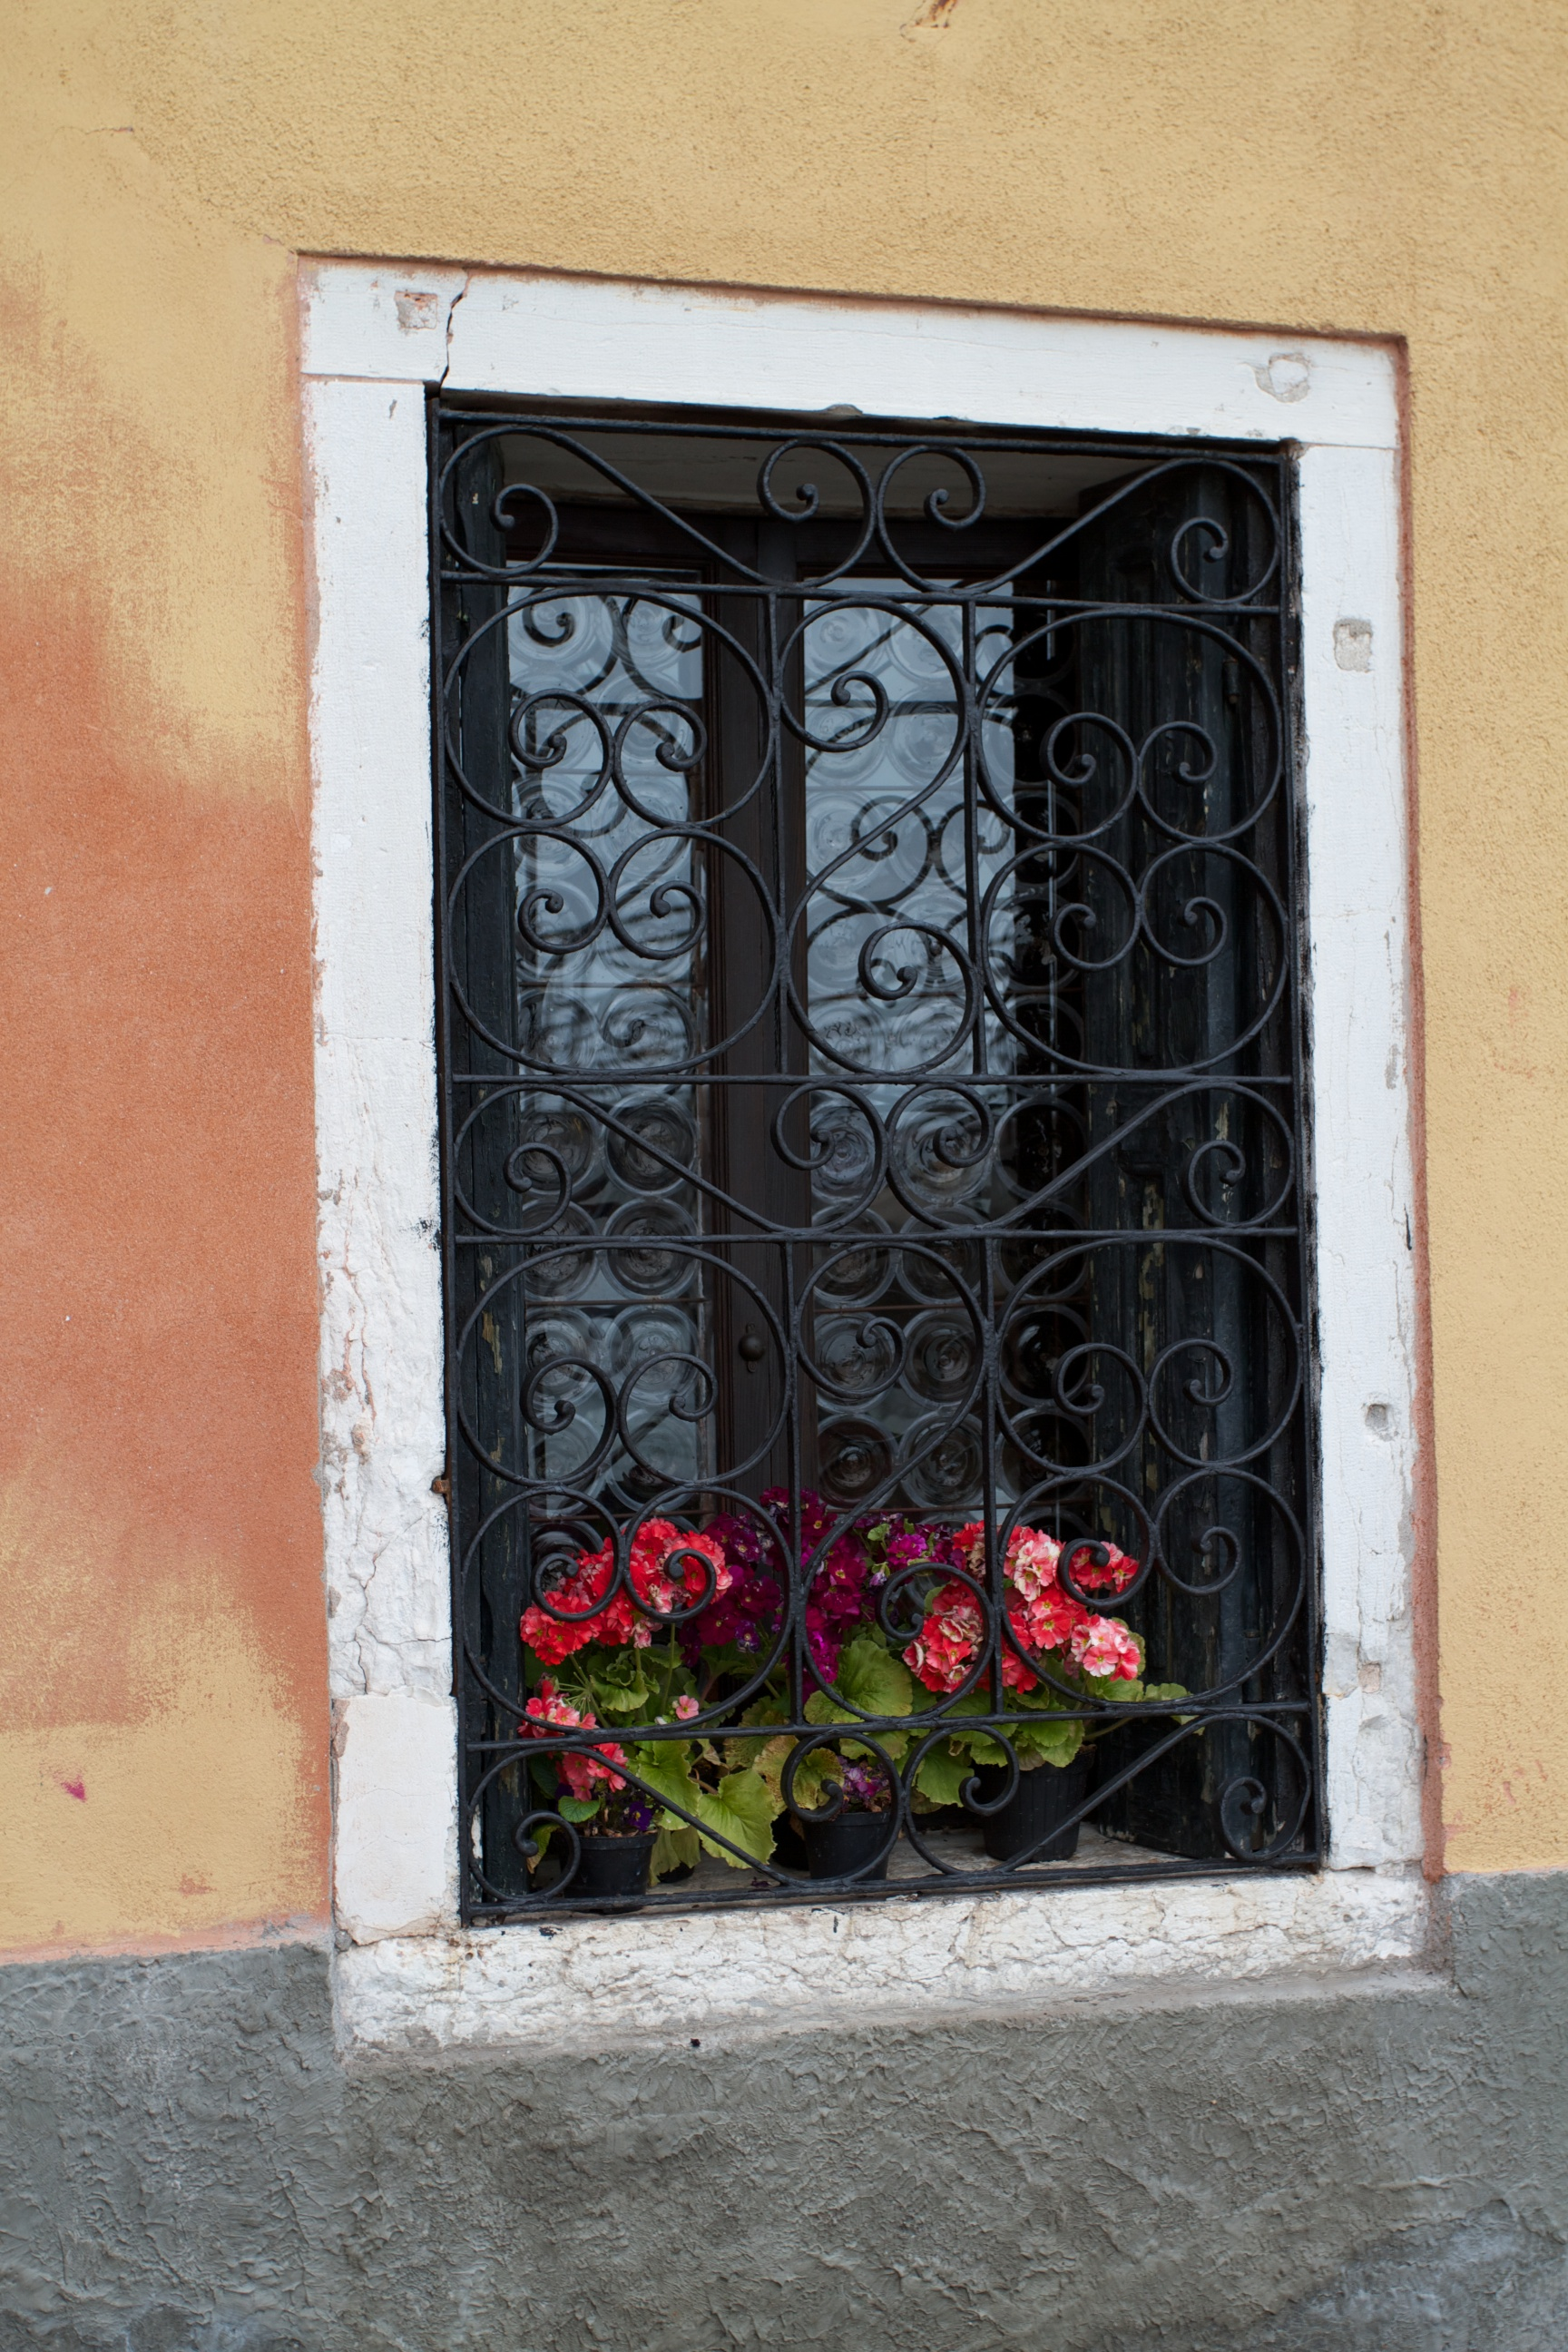 Venetian window sill